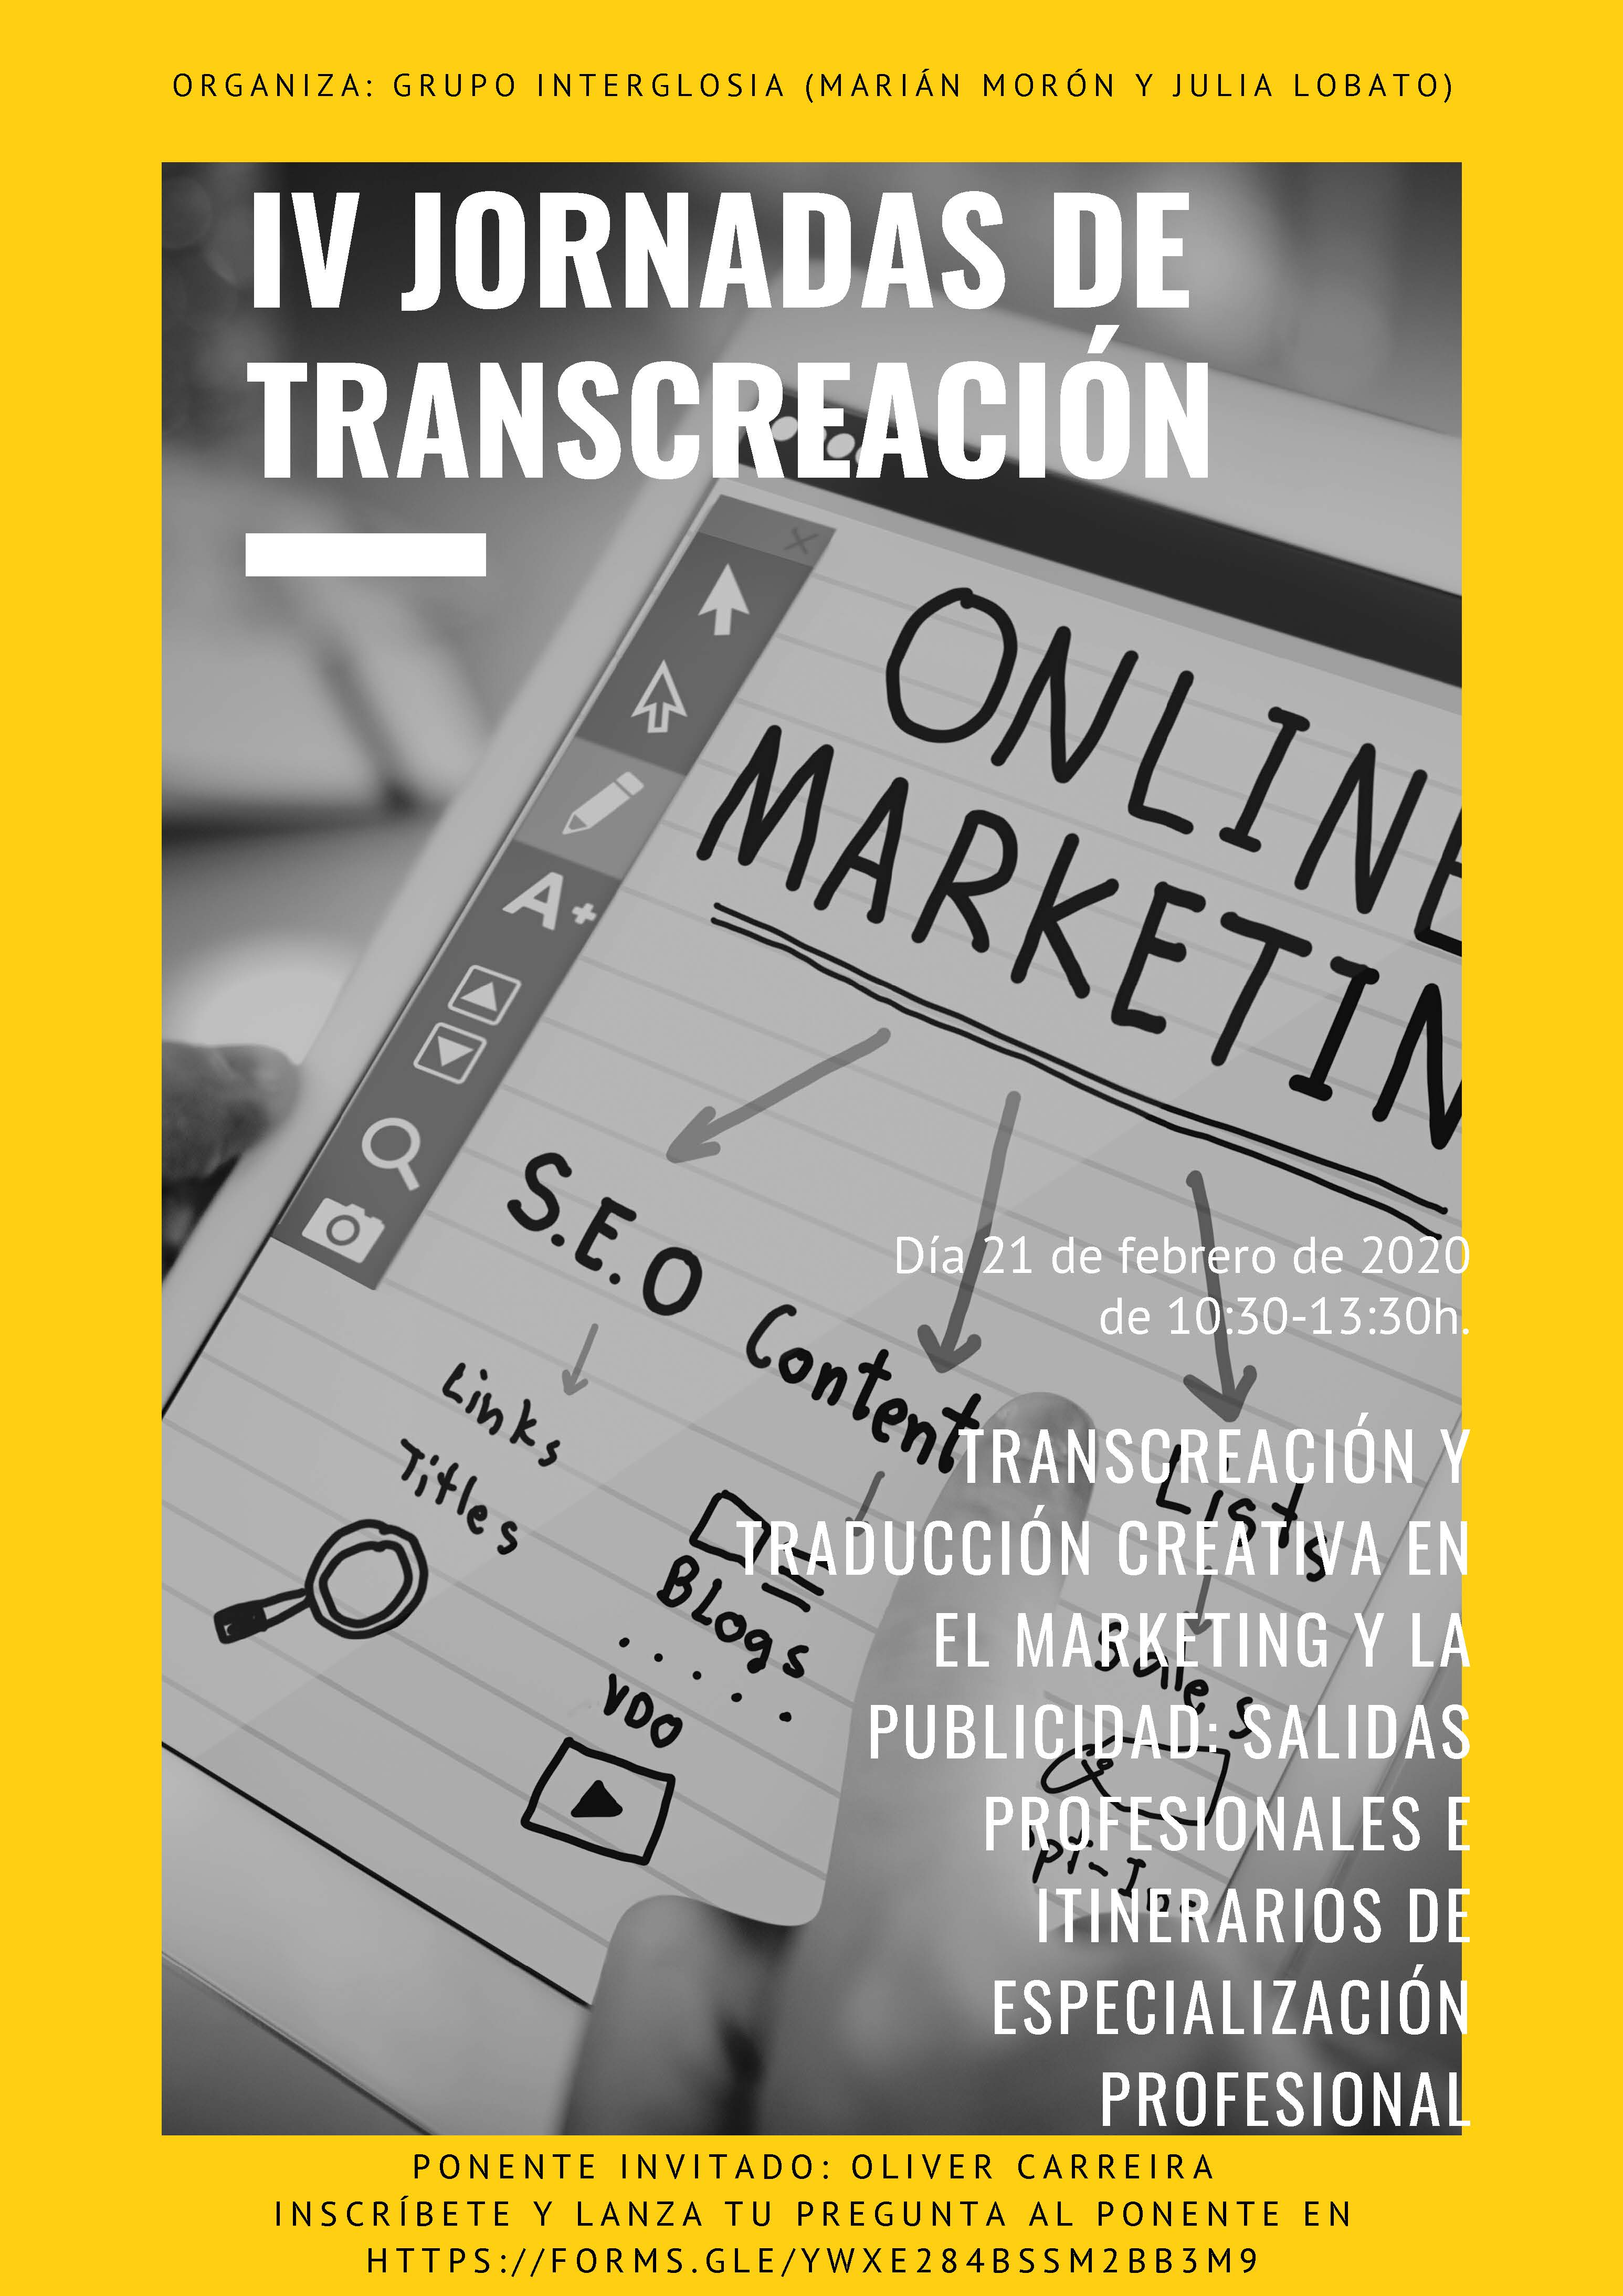 IV Jornadas de transcreacion_Cartel